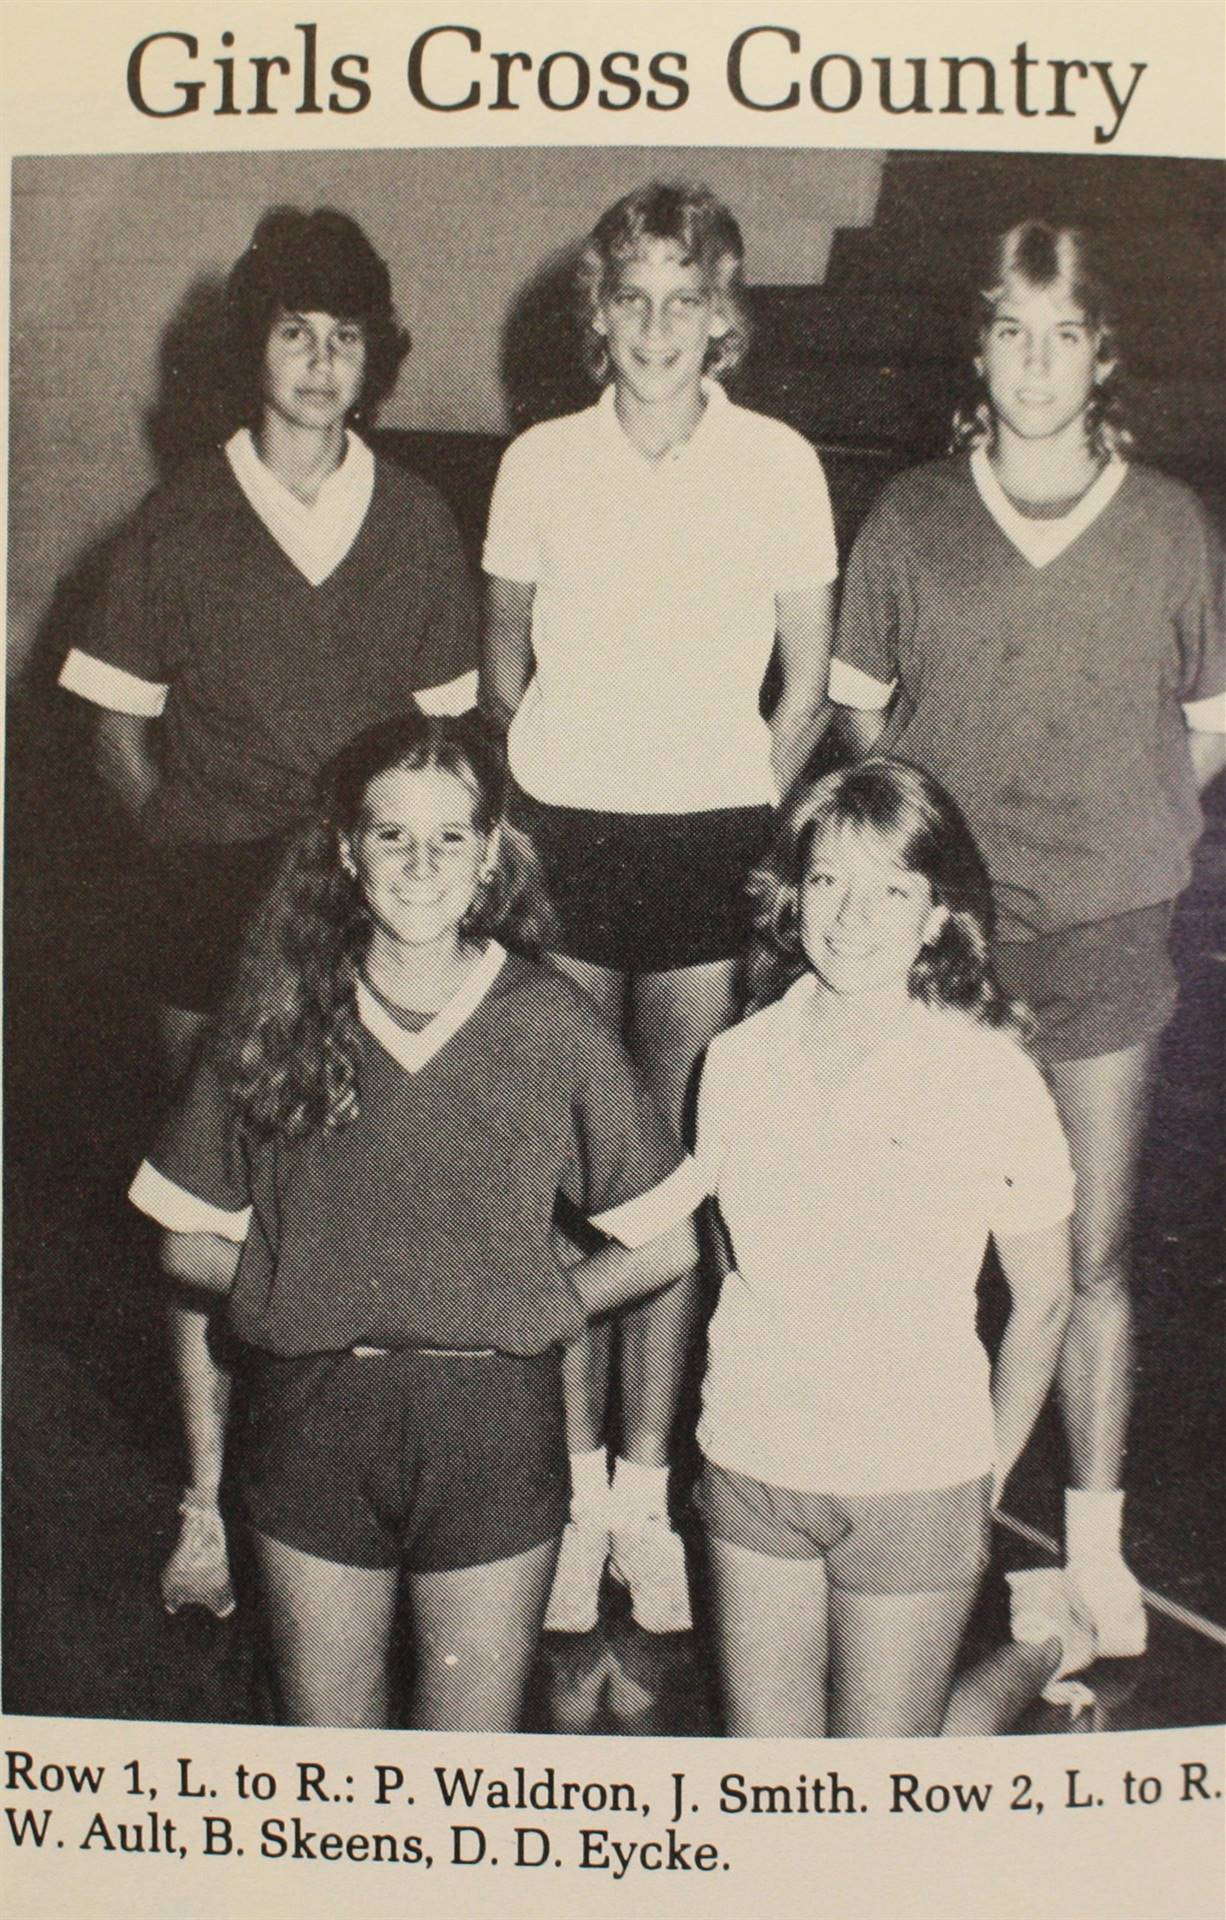 1984 Girls Cross Country